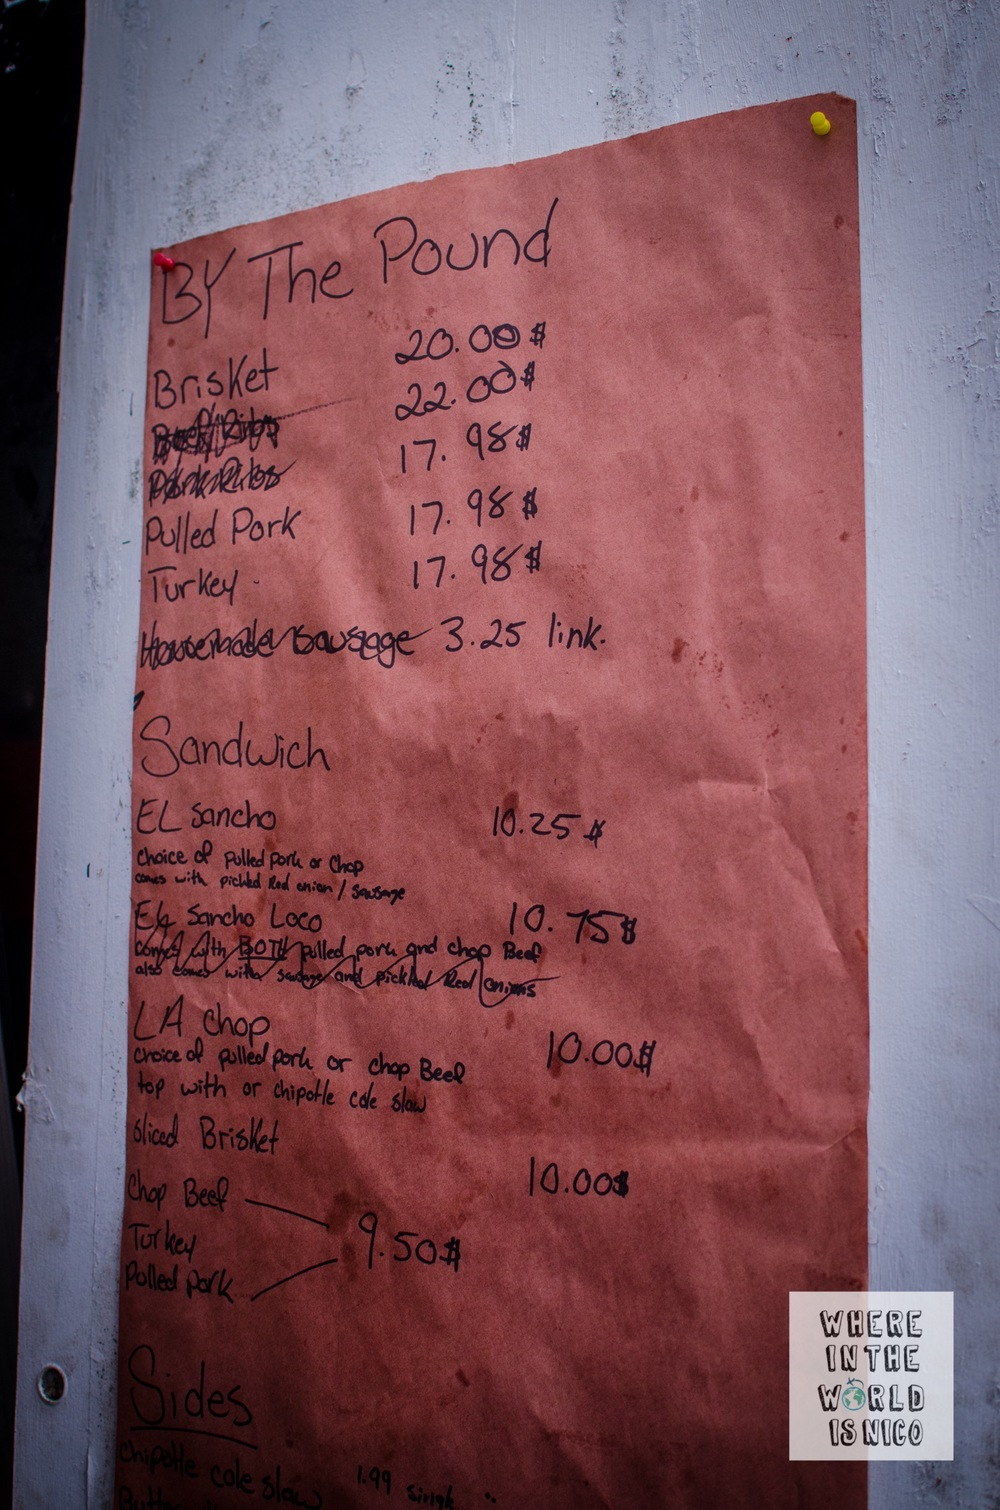 As the day goes on, menu items get scratched off from this handwritten menu